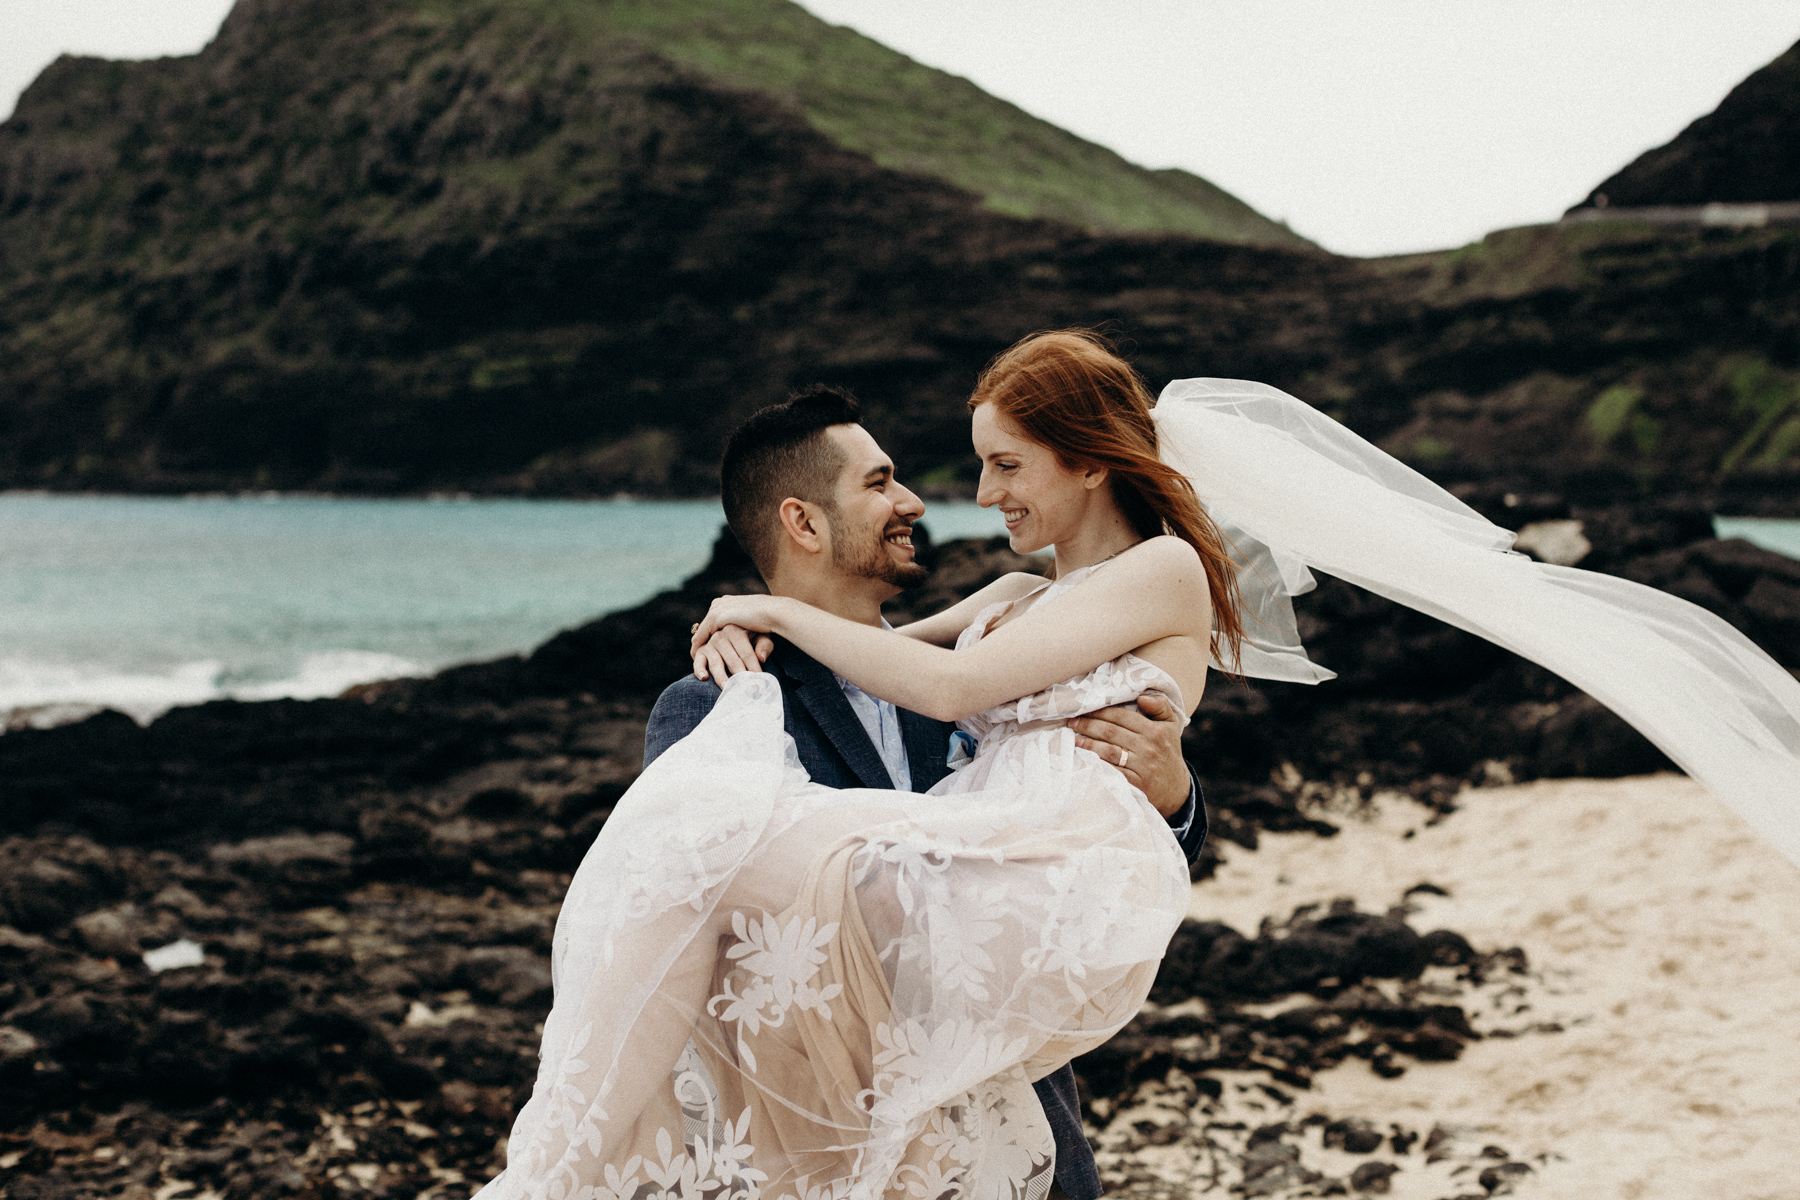 hawaii-wedding-photographer-keani-bakula-38.jpg